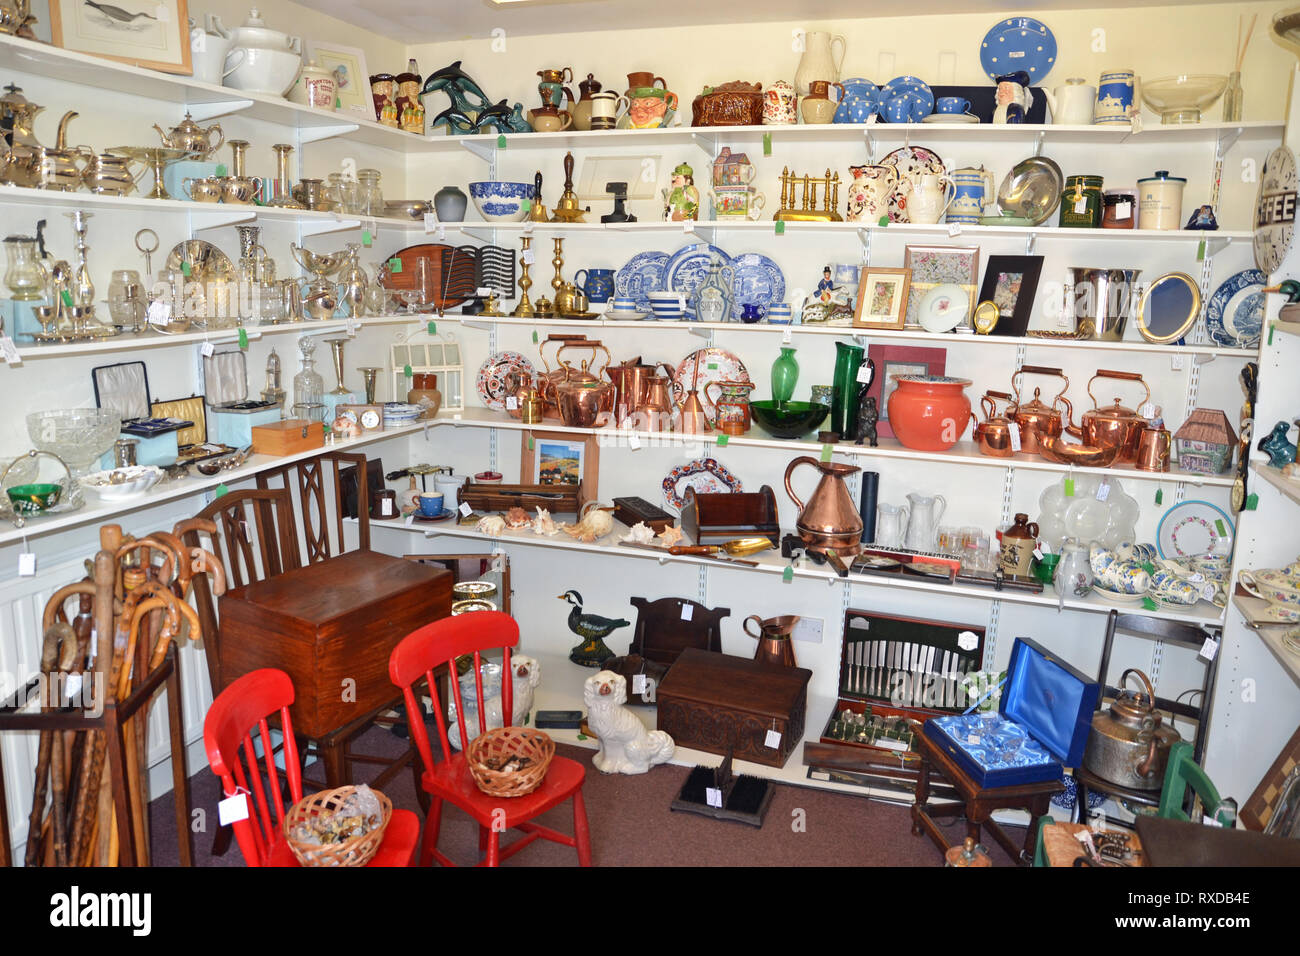 Inside an antique and curiosities shop in Lavenham, Suffolk, UK. Sunny day. - Stock Image